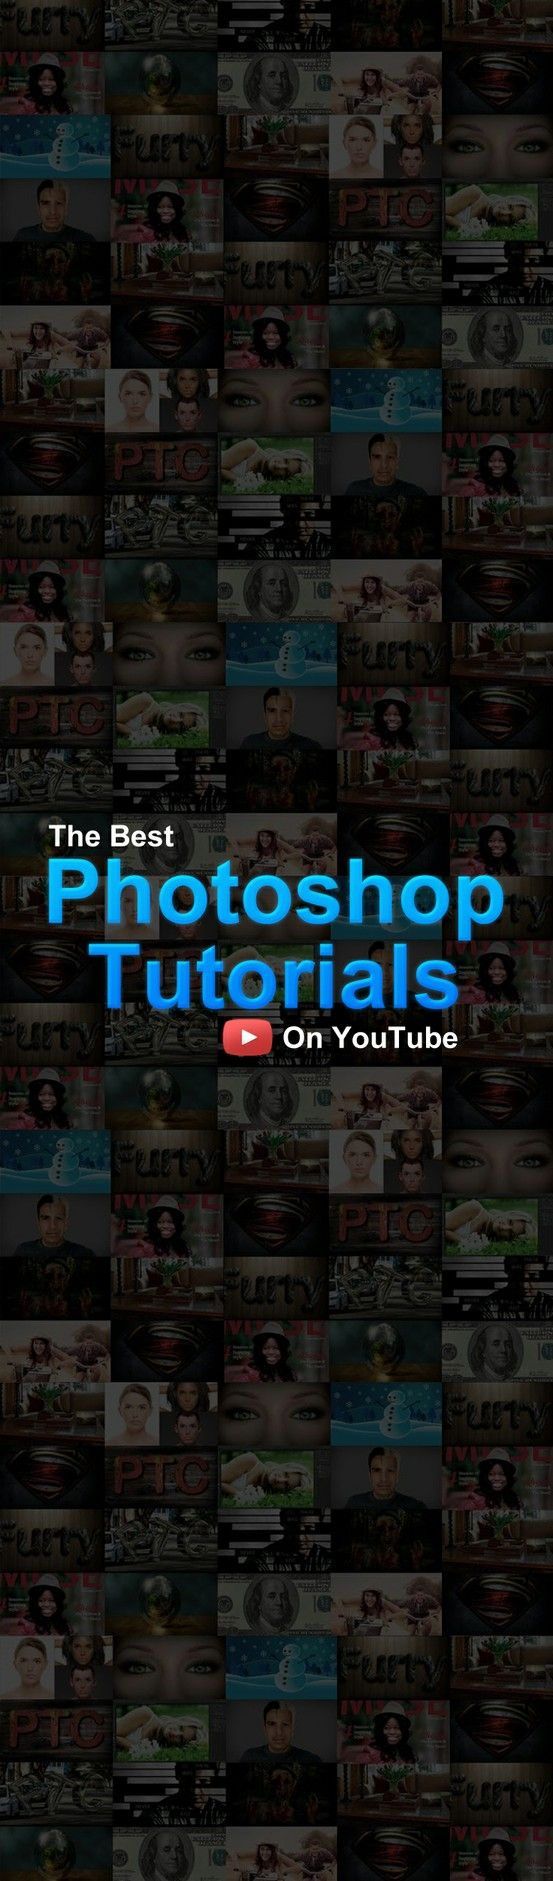 Photoshop Video Tutorials on YouTube